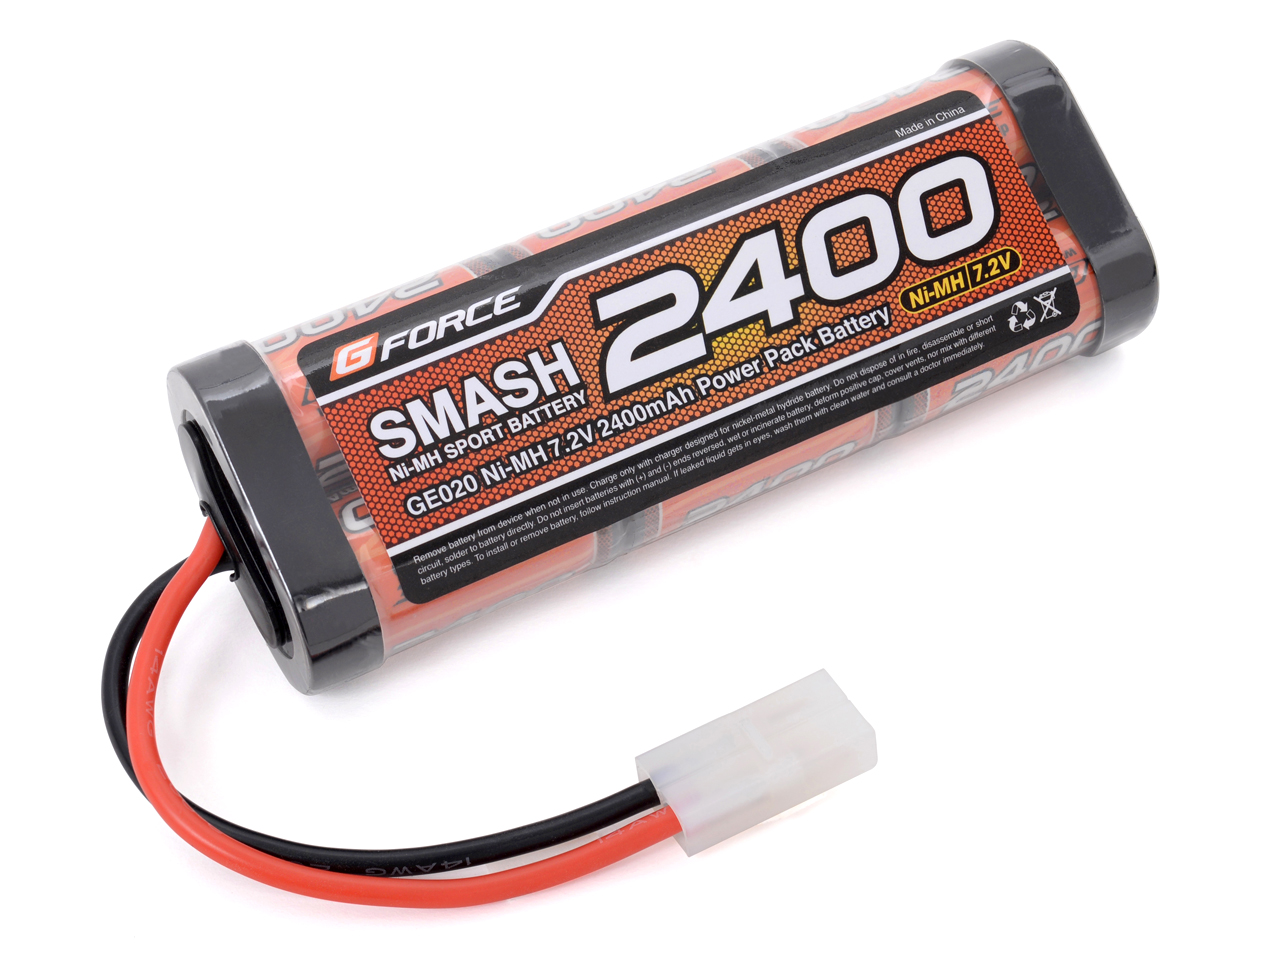 G-FORCE GE020 SMASH NiMH 7.2V 2400mAh